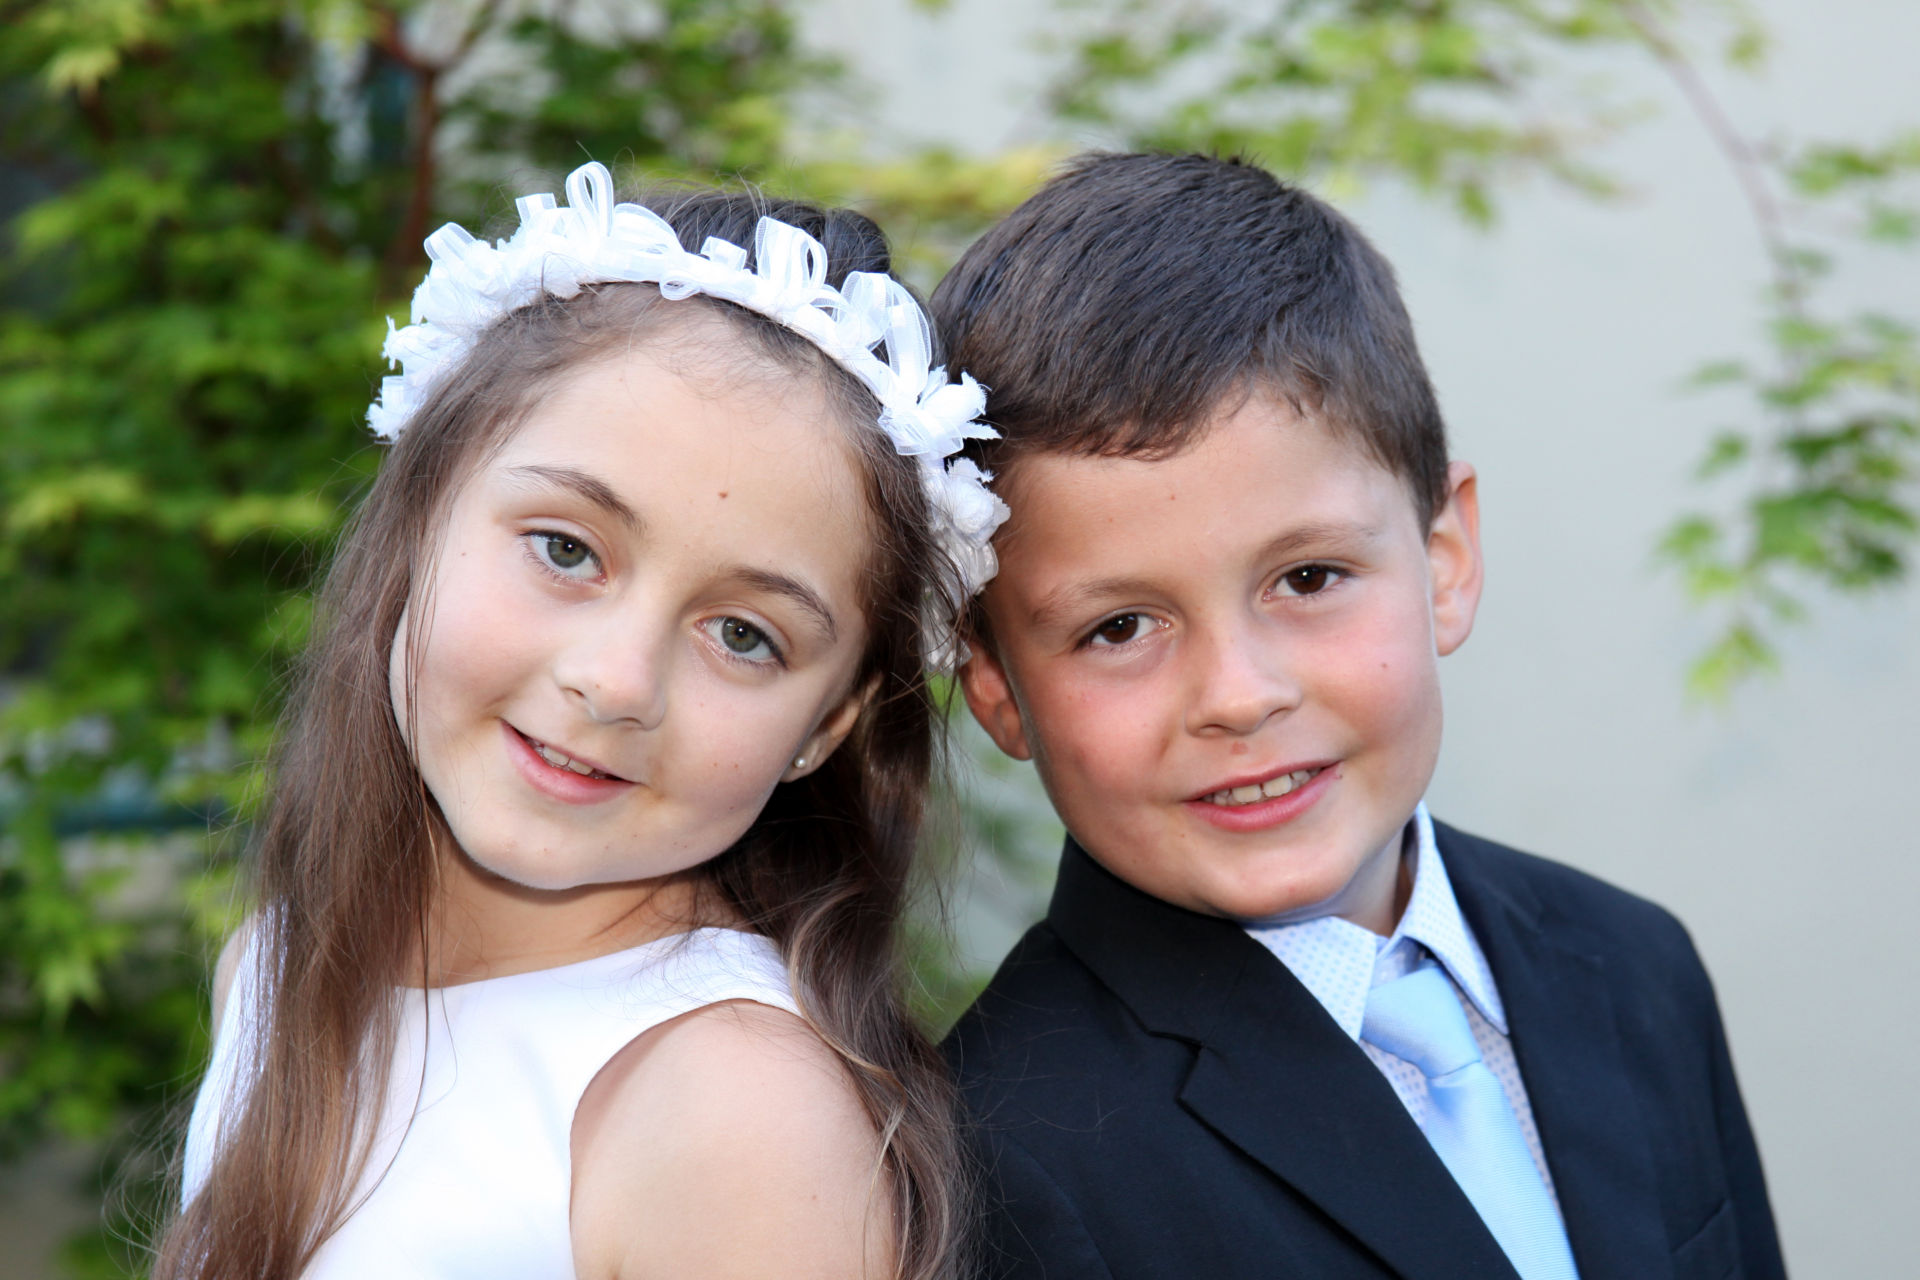 This brother and sister came to Barbara Bell Photography for their First Communion portrait session.